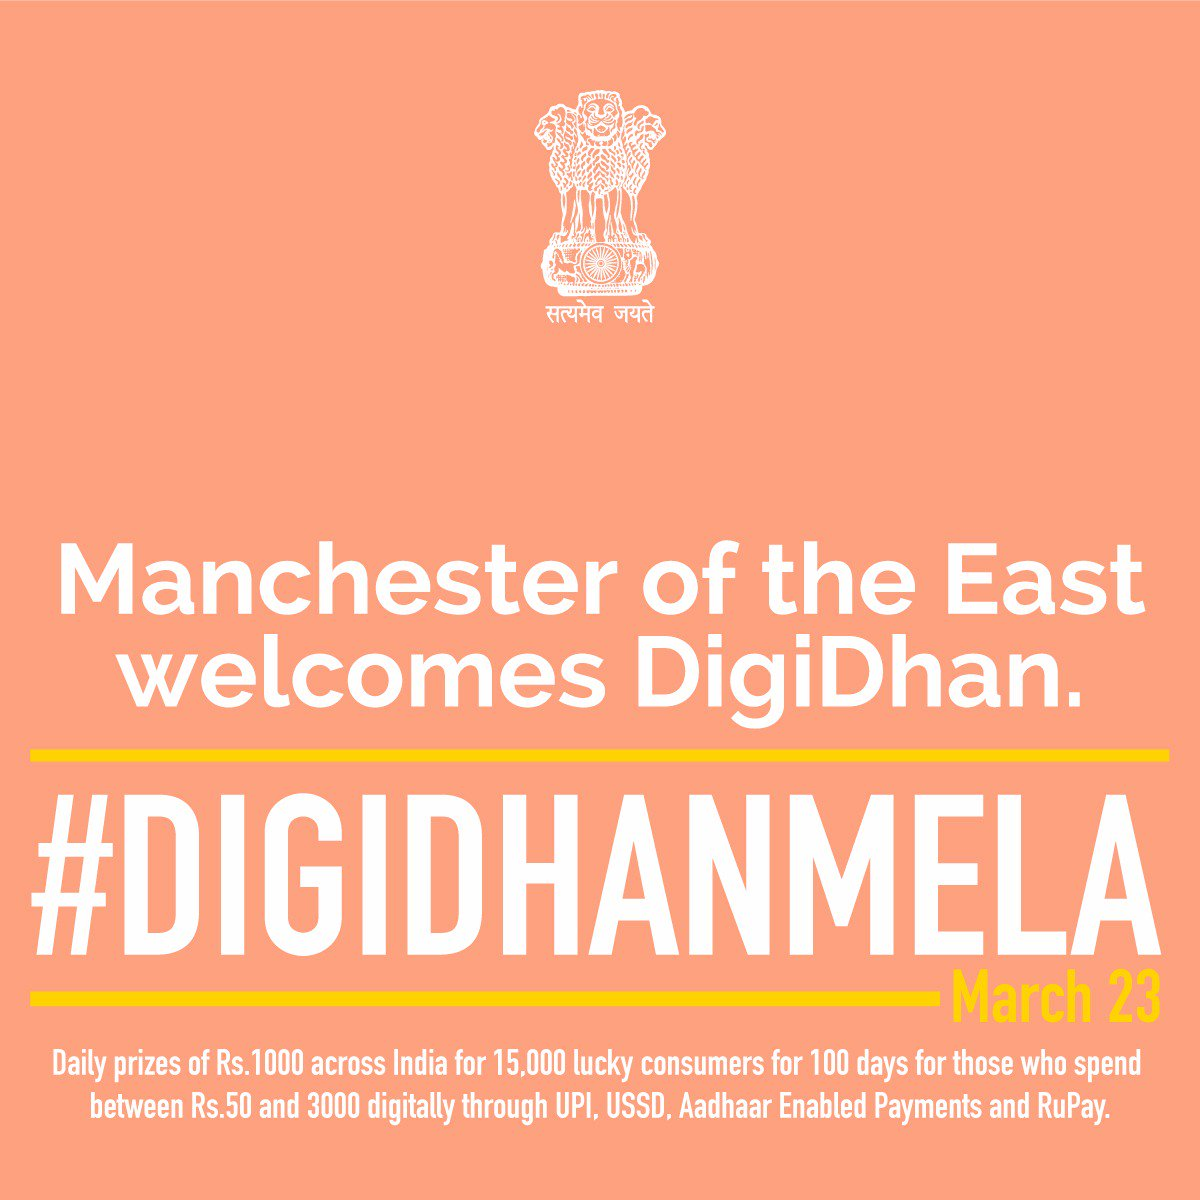 More than 19 million Indians have downloaded #BHIMApp. It&#39;s time for Kanpur citizens to take the digital revolution further. #DigiDhanKanpur<br>http://pic.twitter.com/mrh2tFeDjH